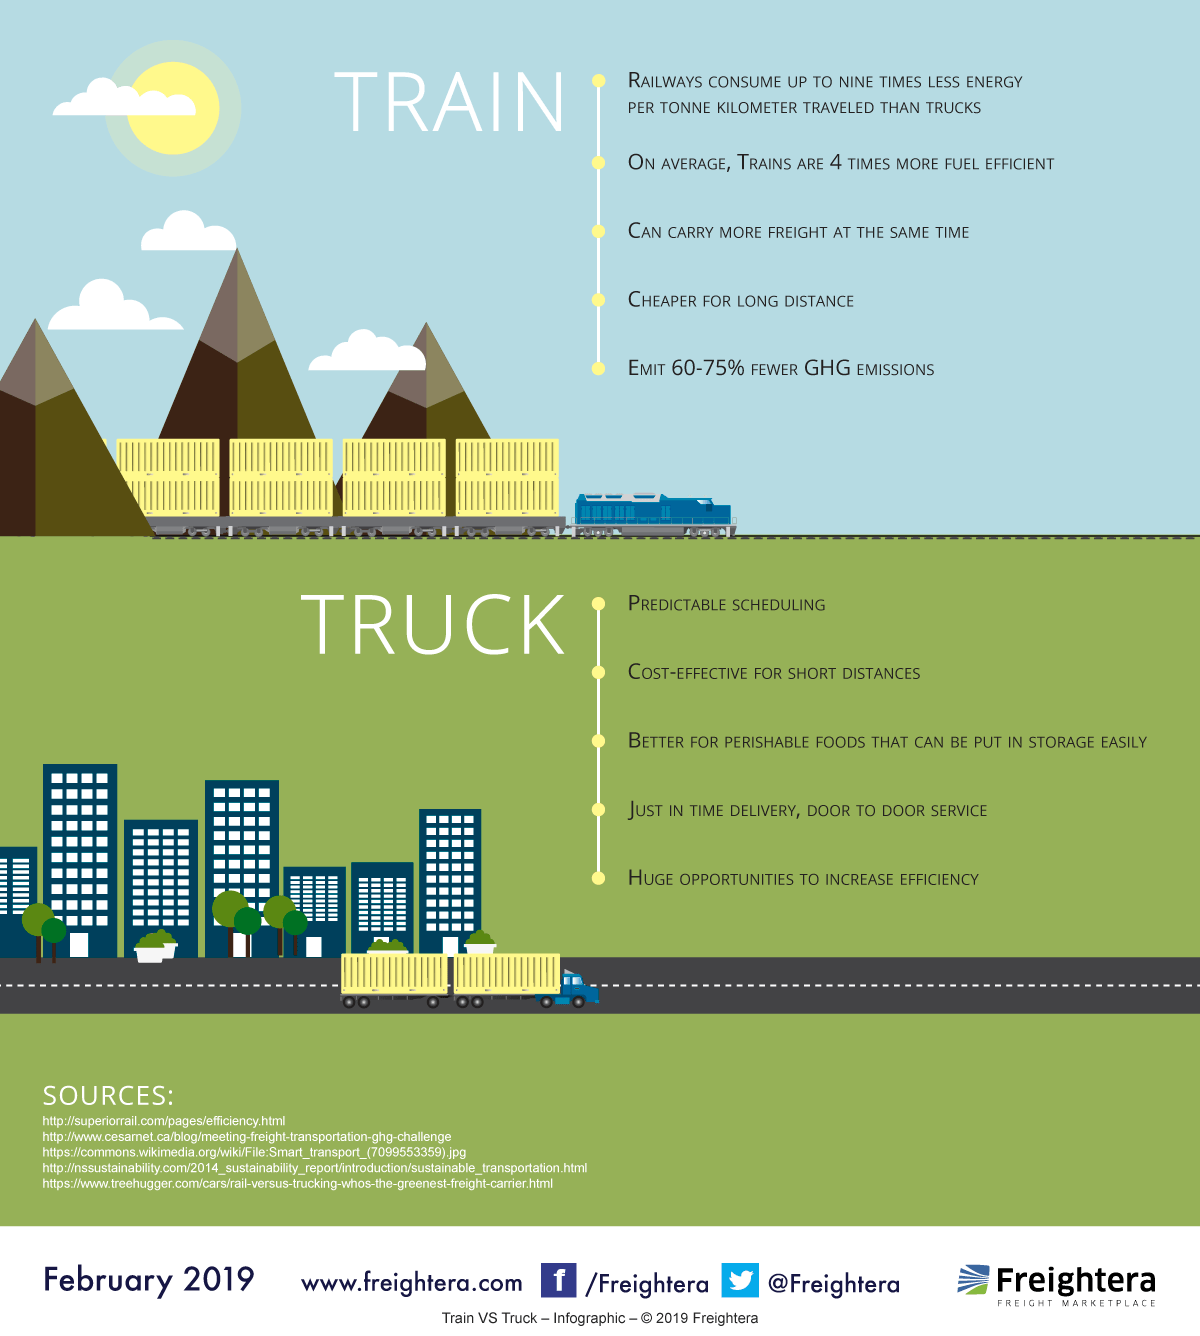 Freight Train vs Truck - Cost, Efficiency, Differences